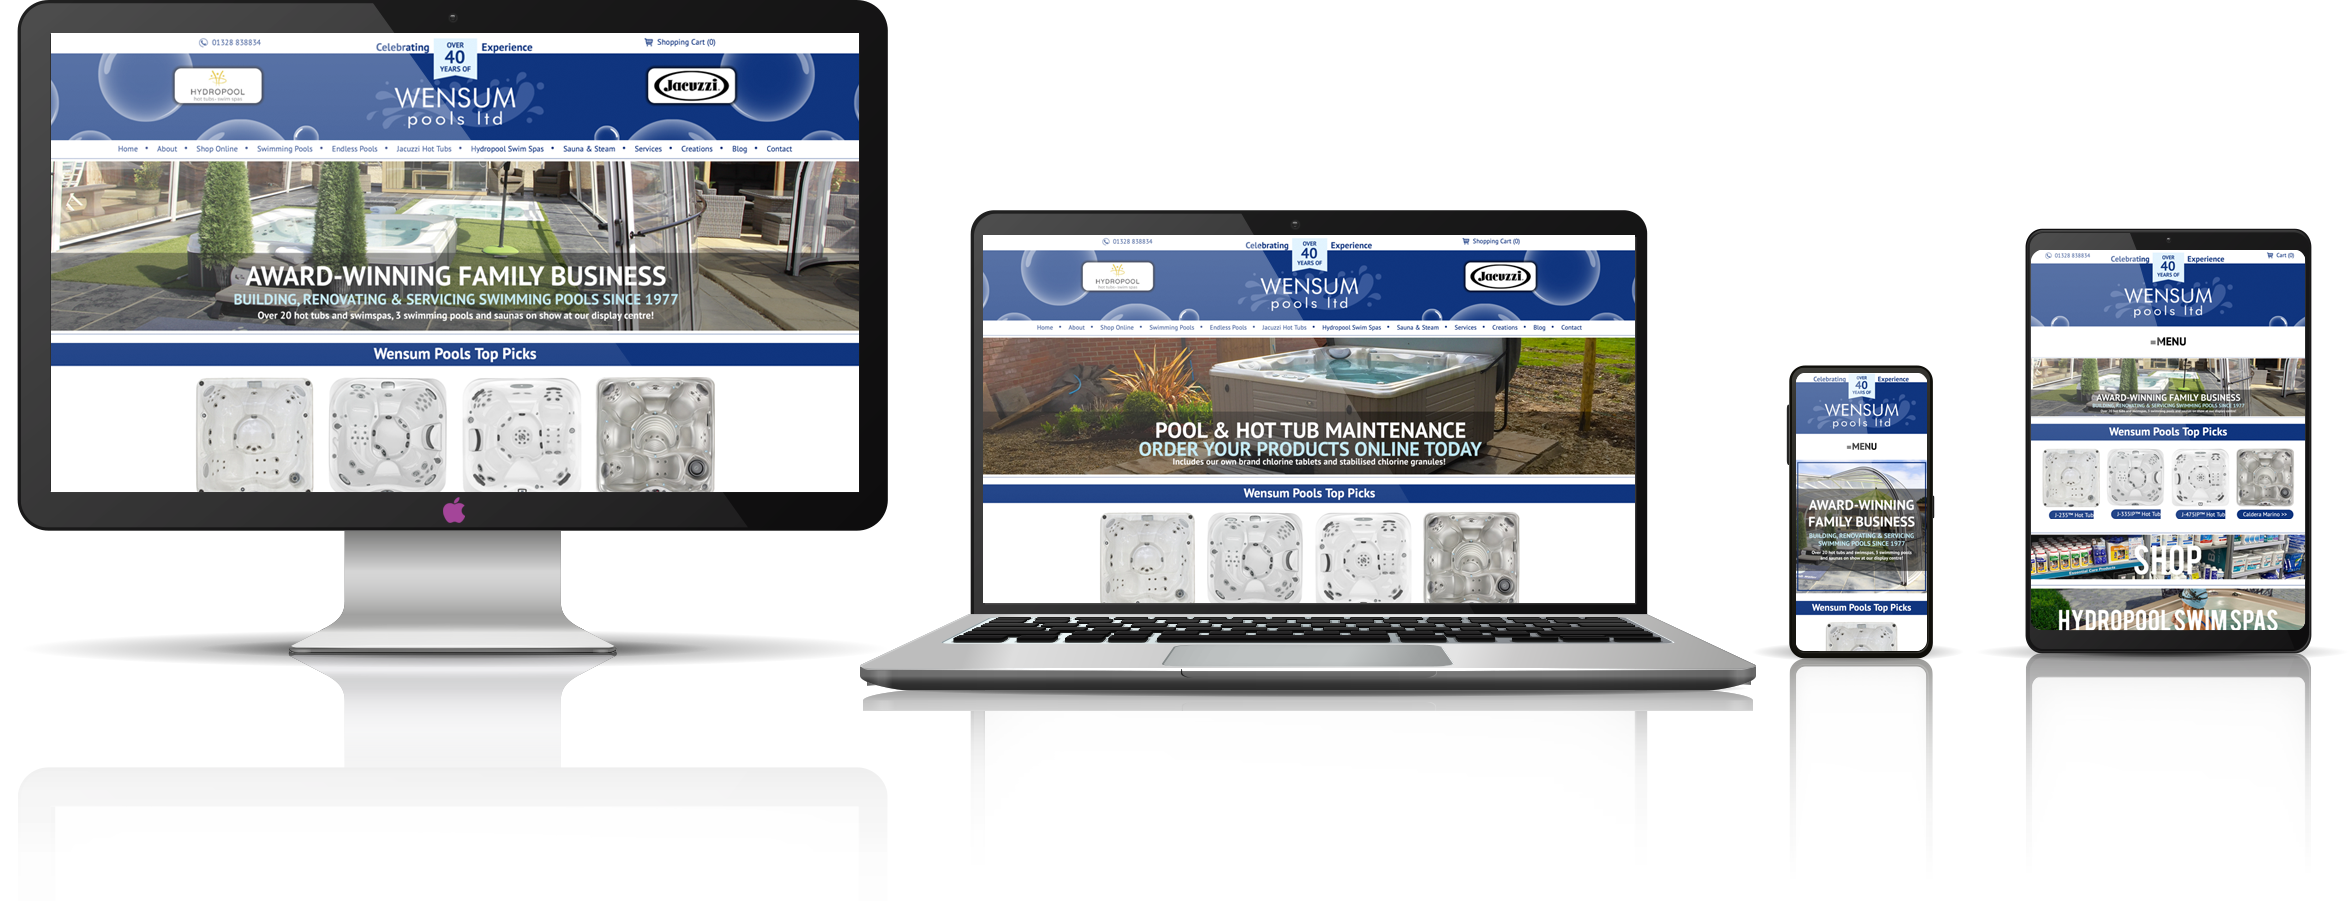 The Wensum Pools Ltd, suppliers of swimming pools, and hot tubs fully responsive mock-up images showing desktop, laptop, tablet, and mobile phone devices.